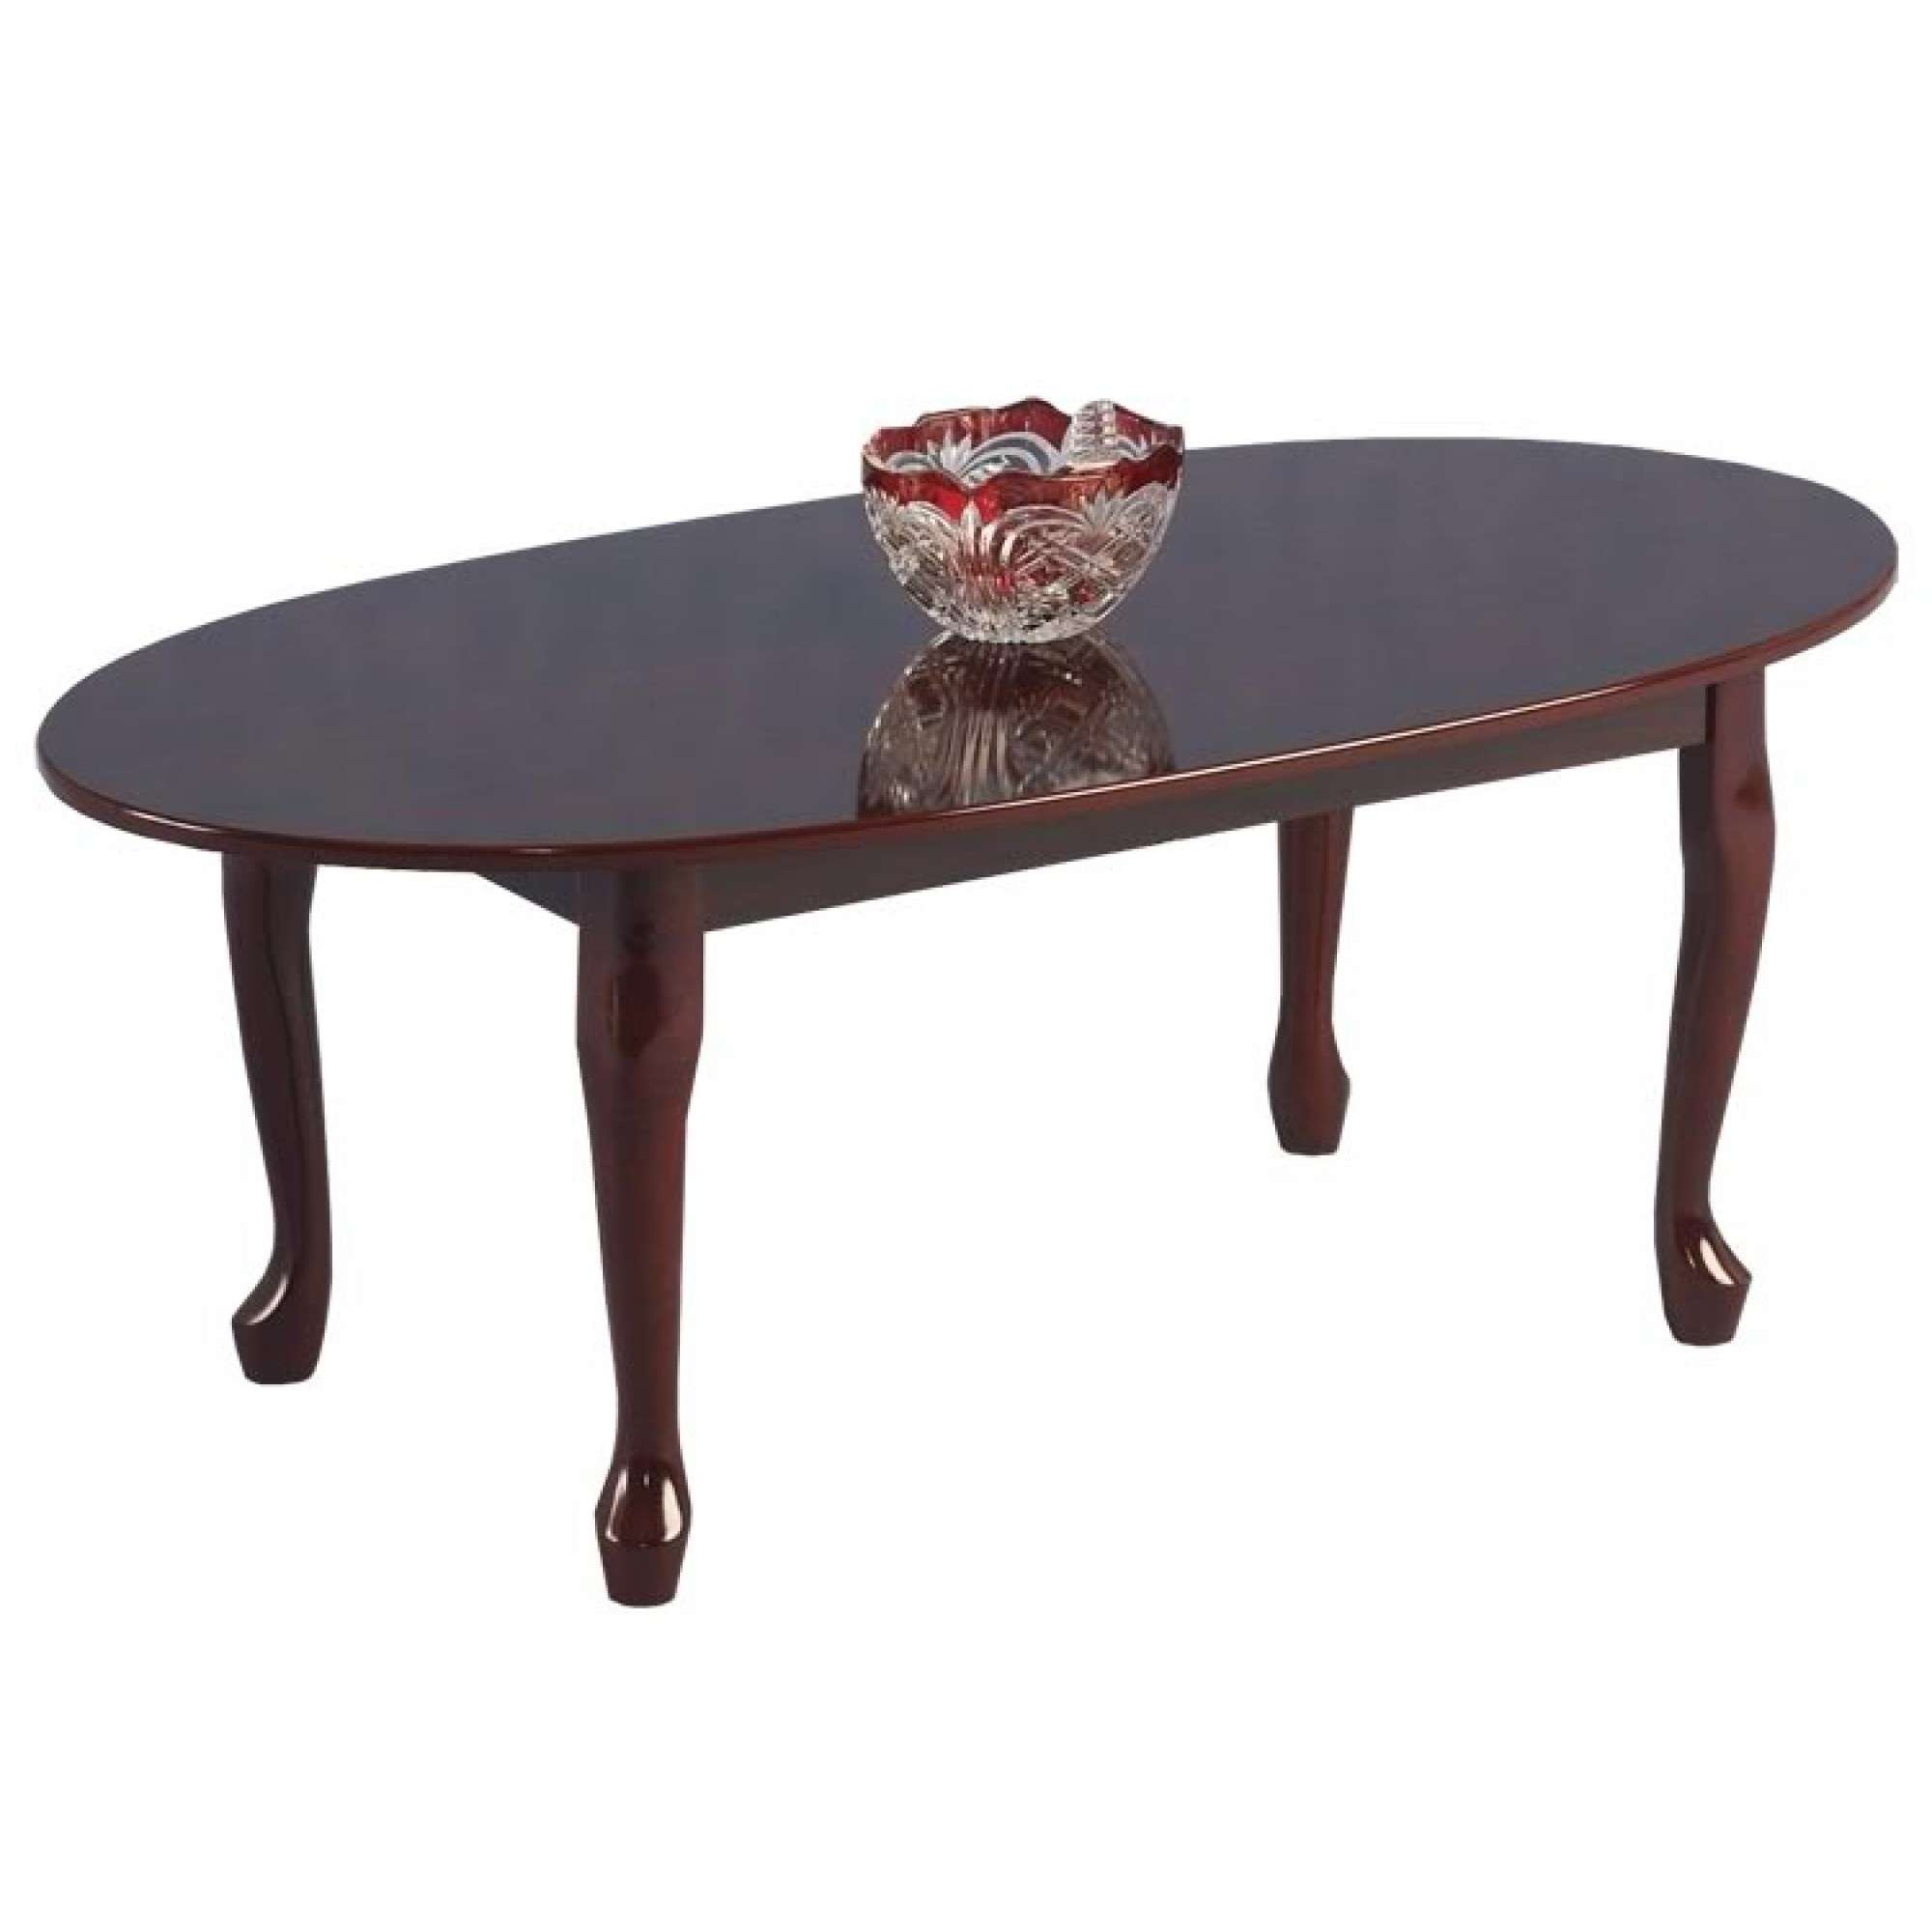 2017 Dark Wooden Coffee Tables With Regard To Coffee Table : Magnificent Wood And Glass Coffee Table White (View 16 of 20)